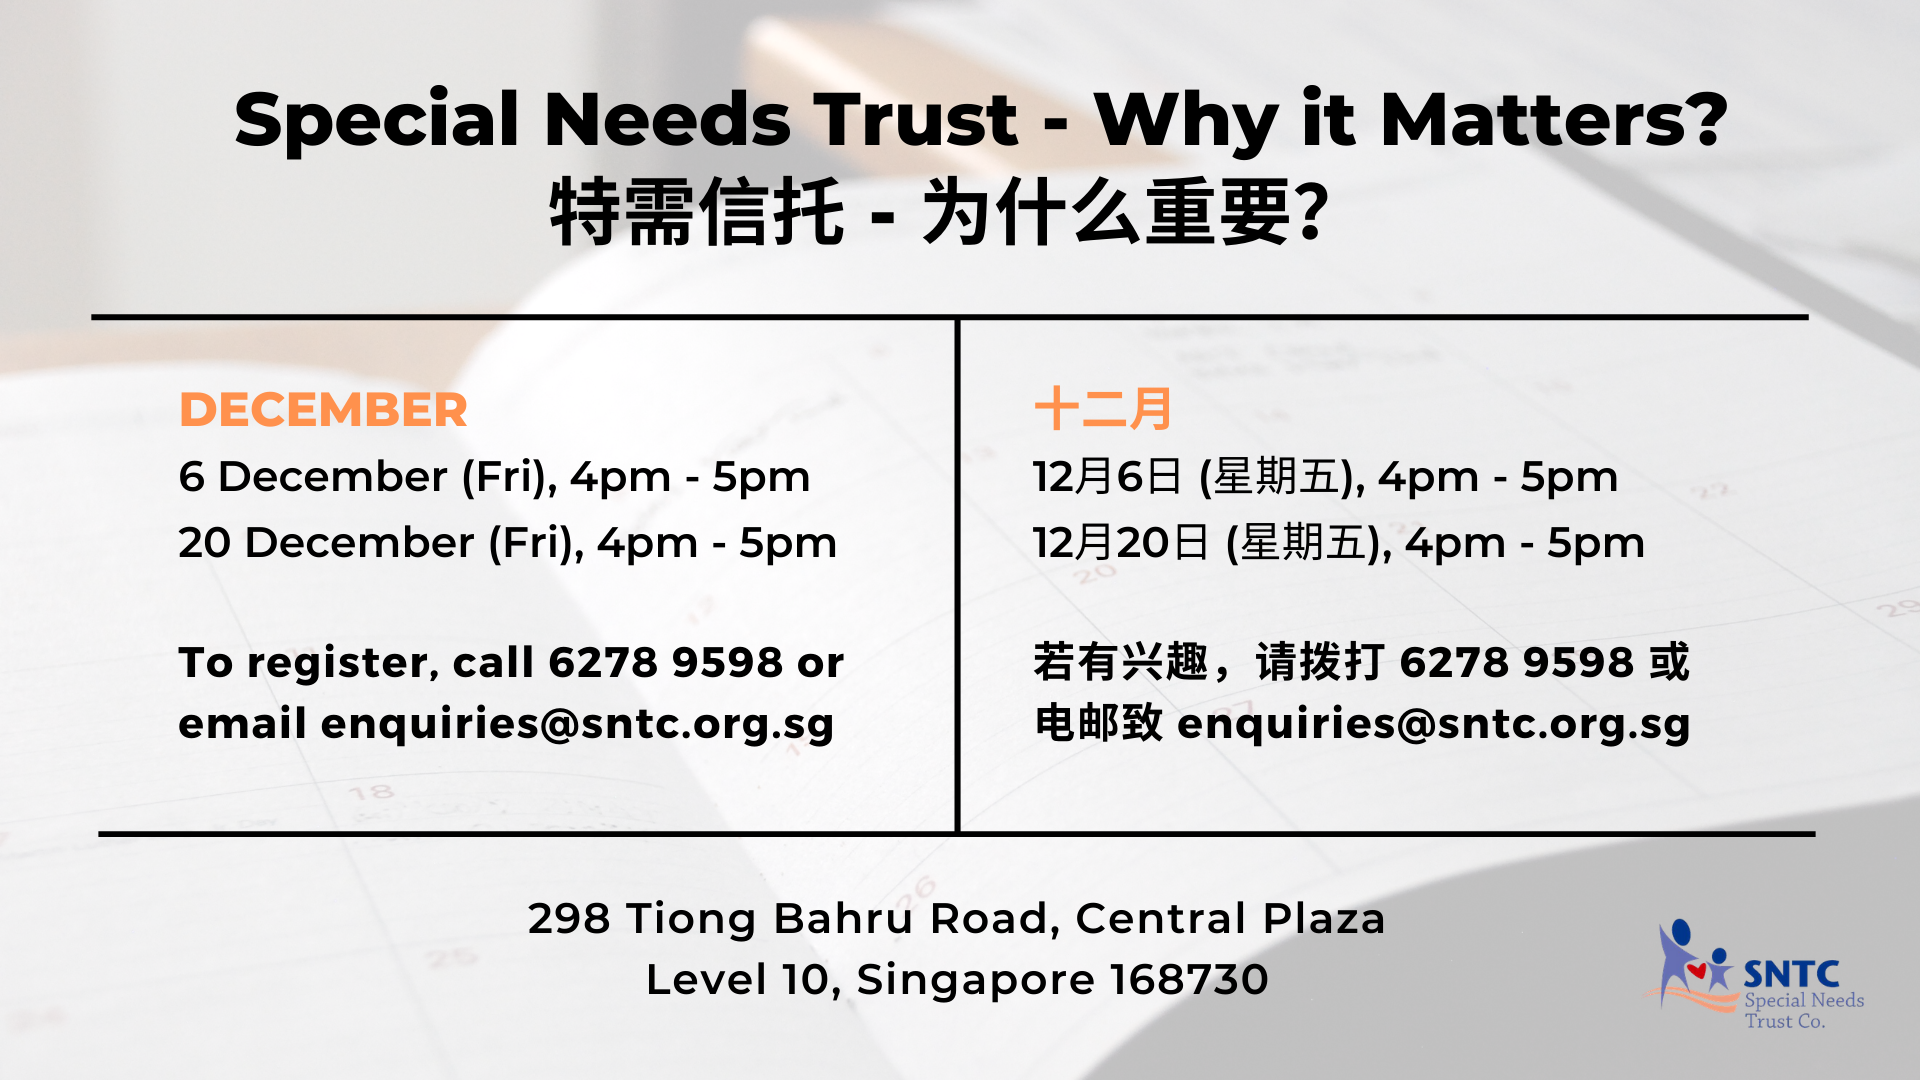 Special Needs Trust - Why It Matters? (特需信托 - 为什么重要?)